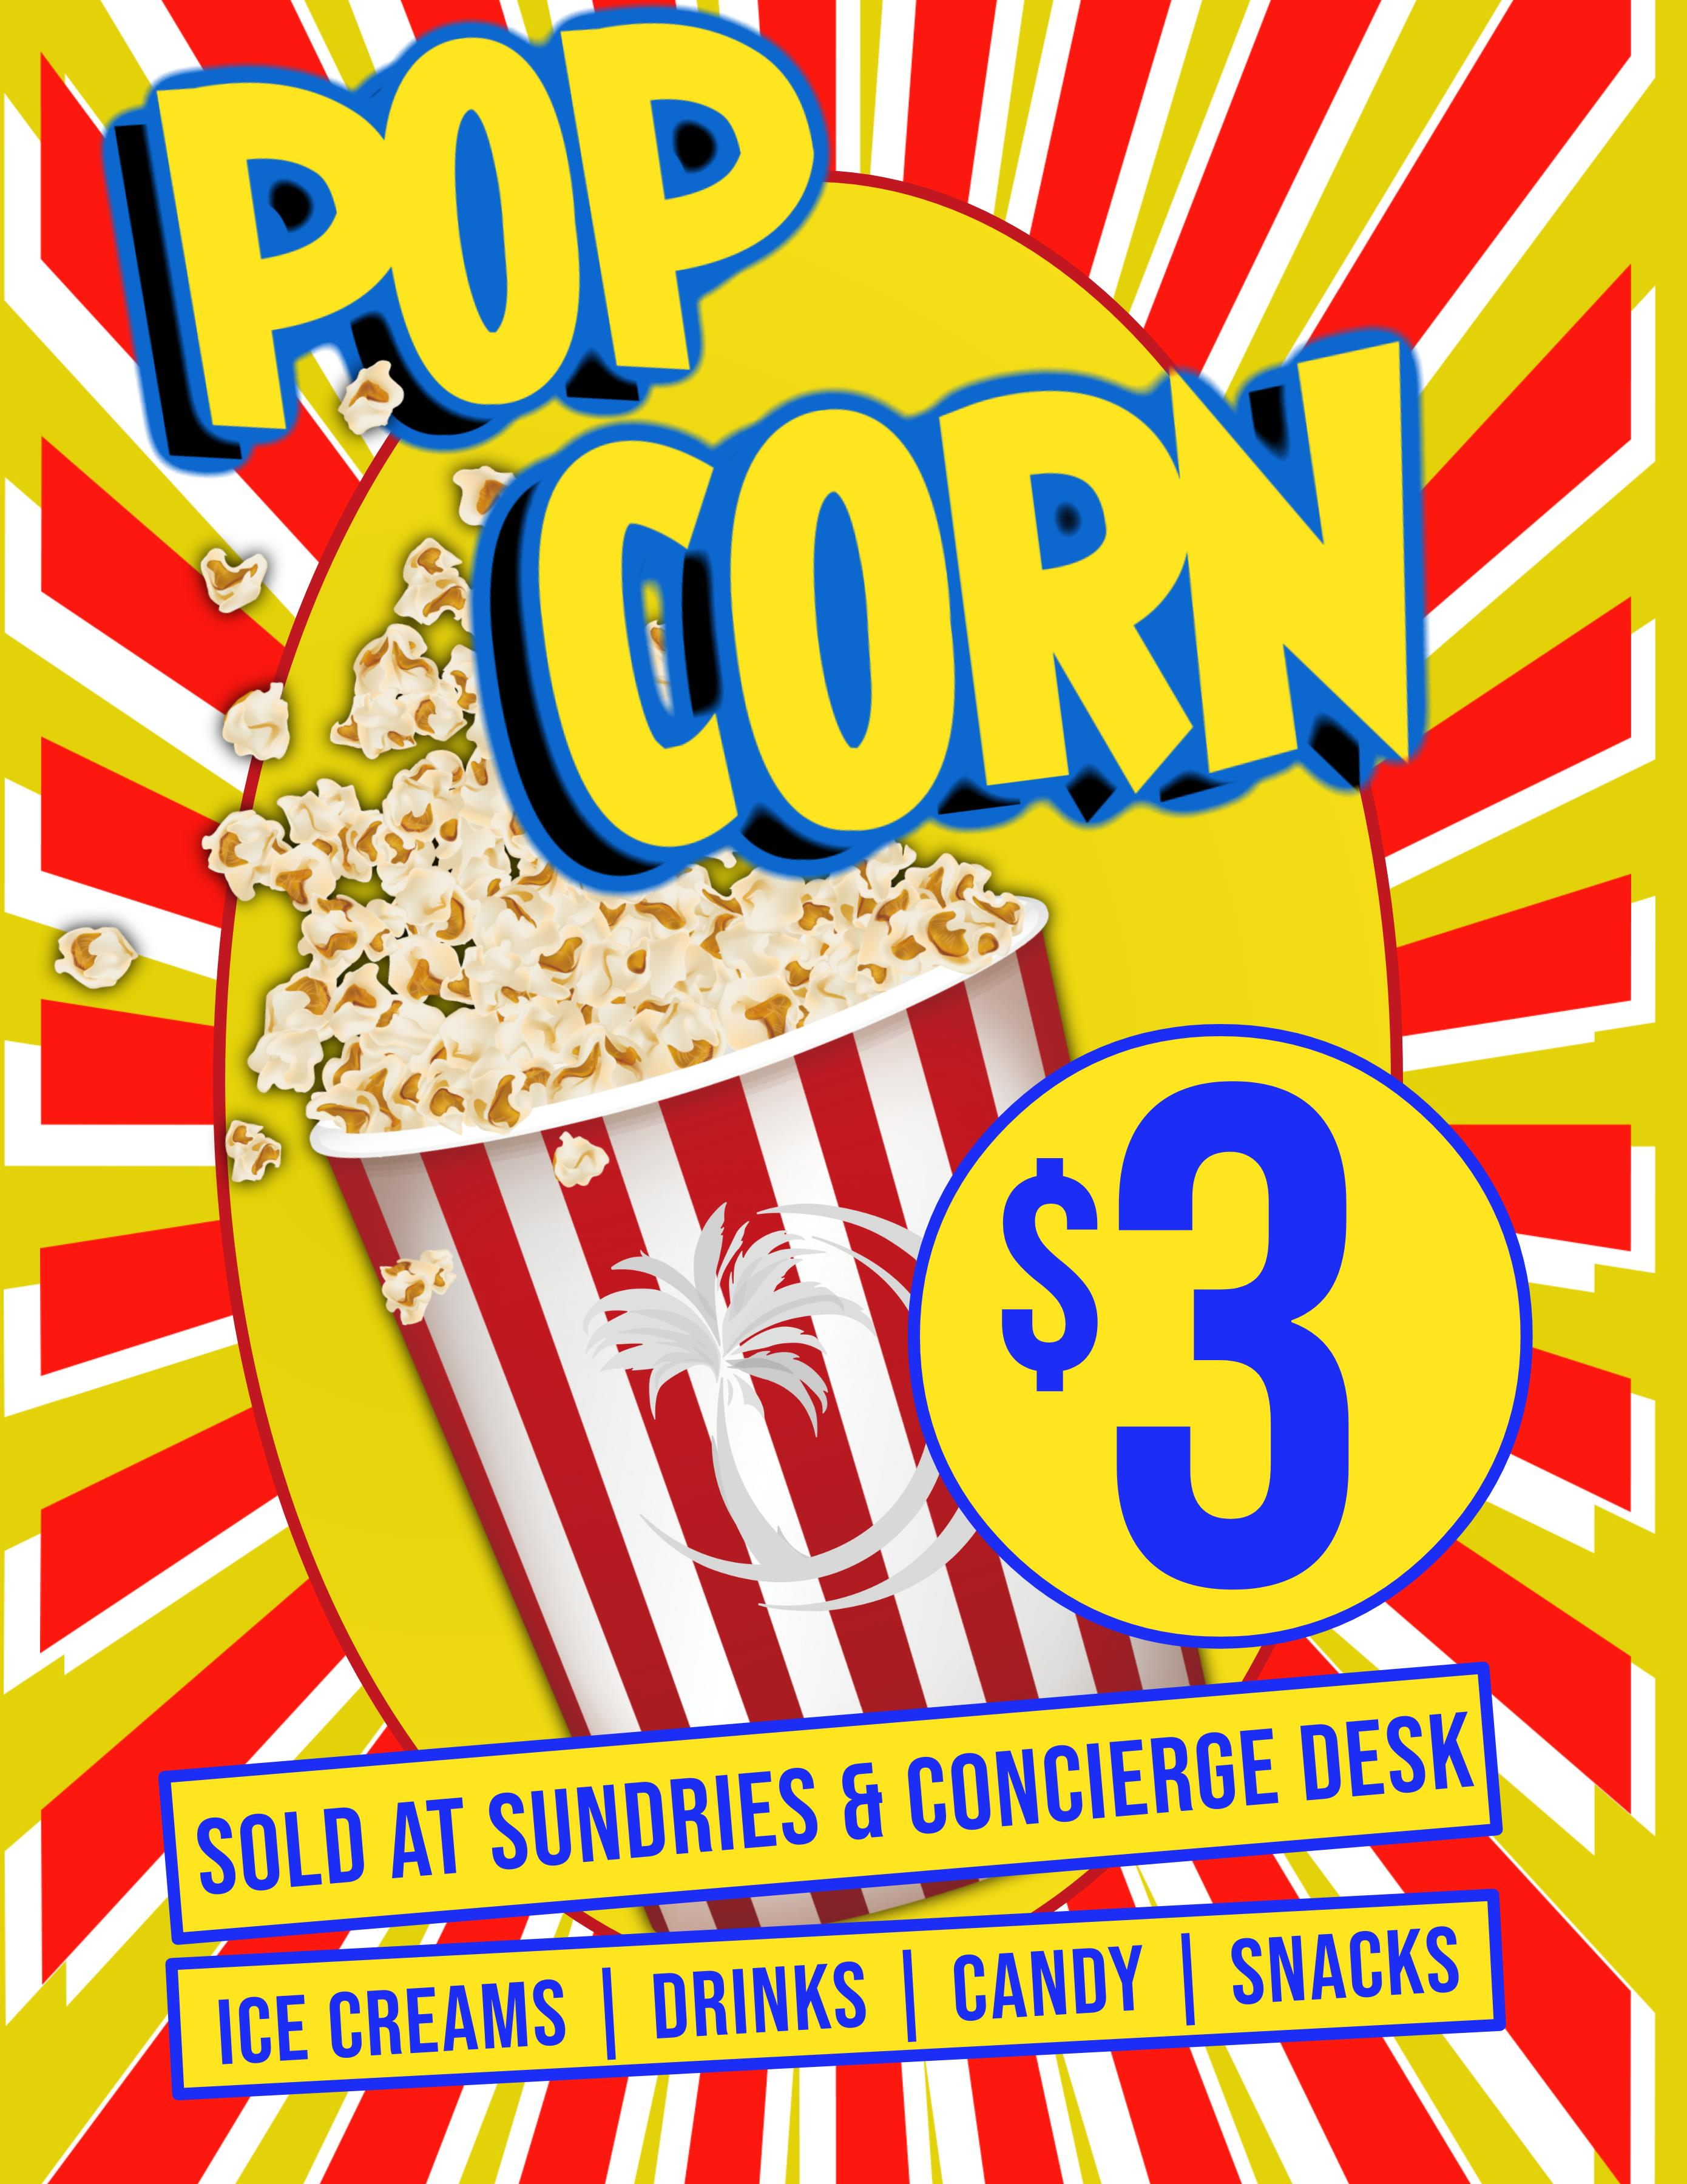 Pop Corn $3 Sold at sundires & concierge desk. Ice Cream | Drinks | Candy | Snacks